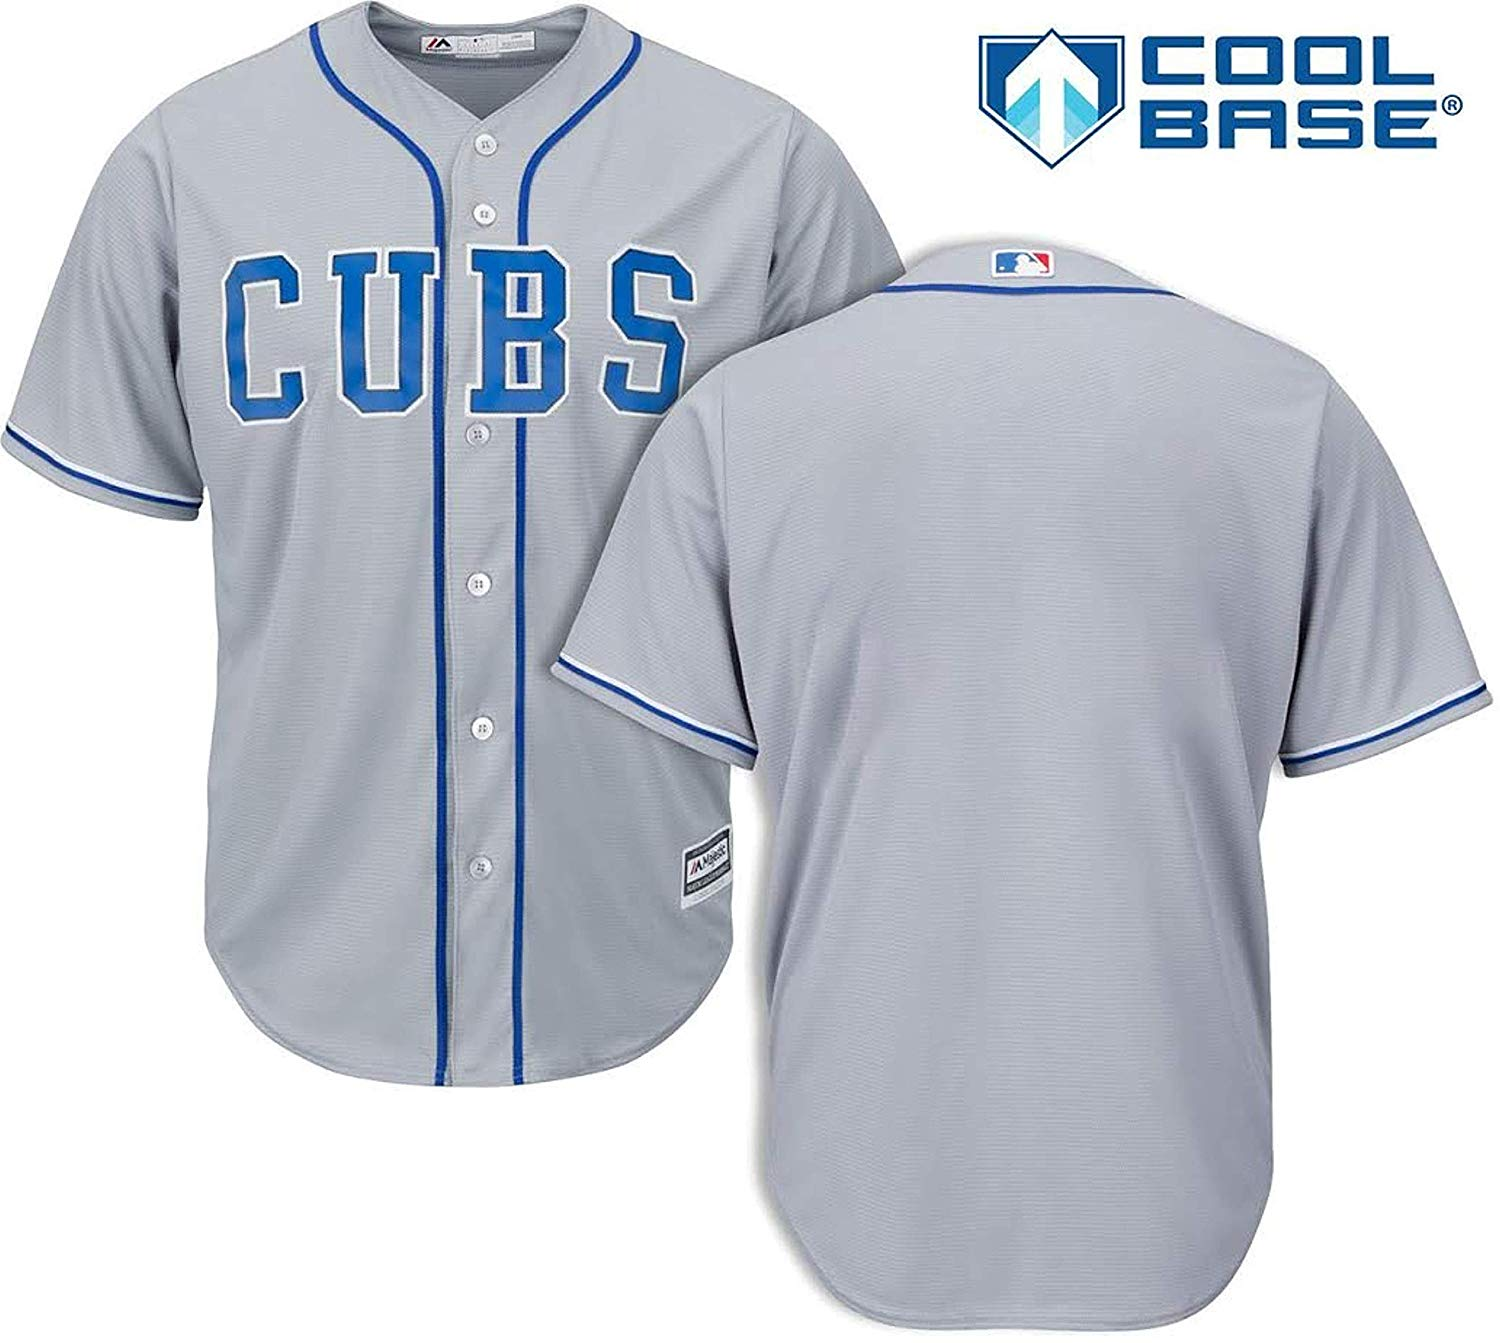 61b8a11fb Get Quotations · Outerstuff Chicago Cubs Blank Gray Youth Cool Base  Alternate 2 Replica Jersey (Large 14/